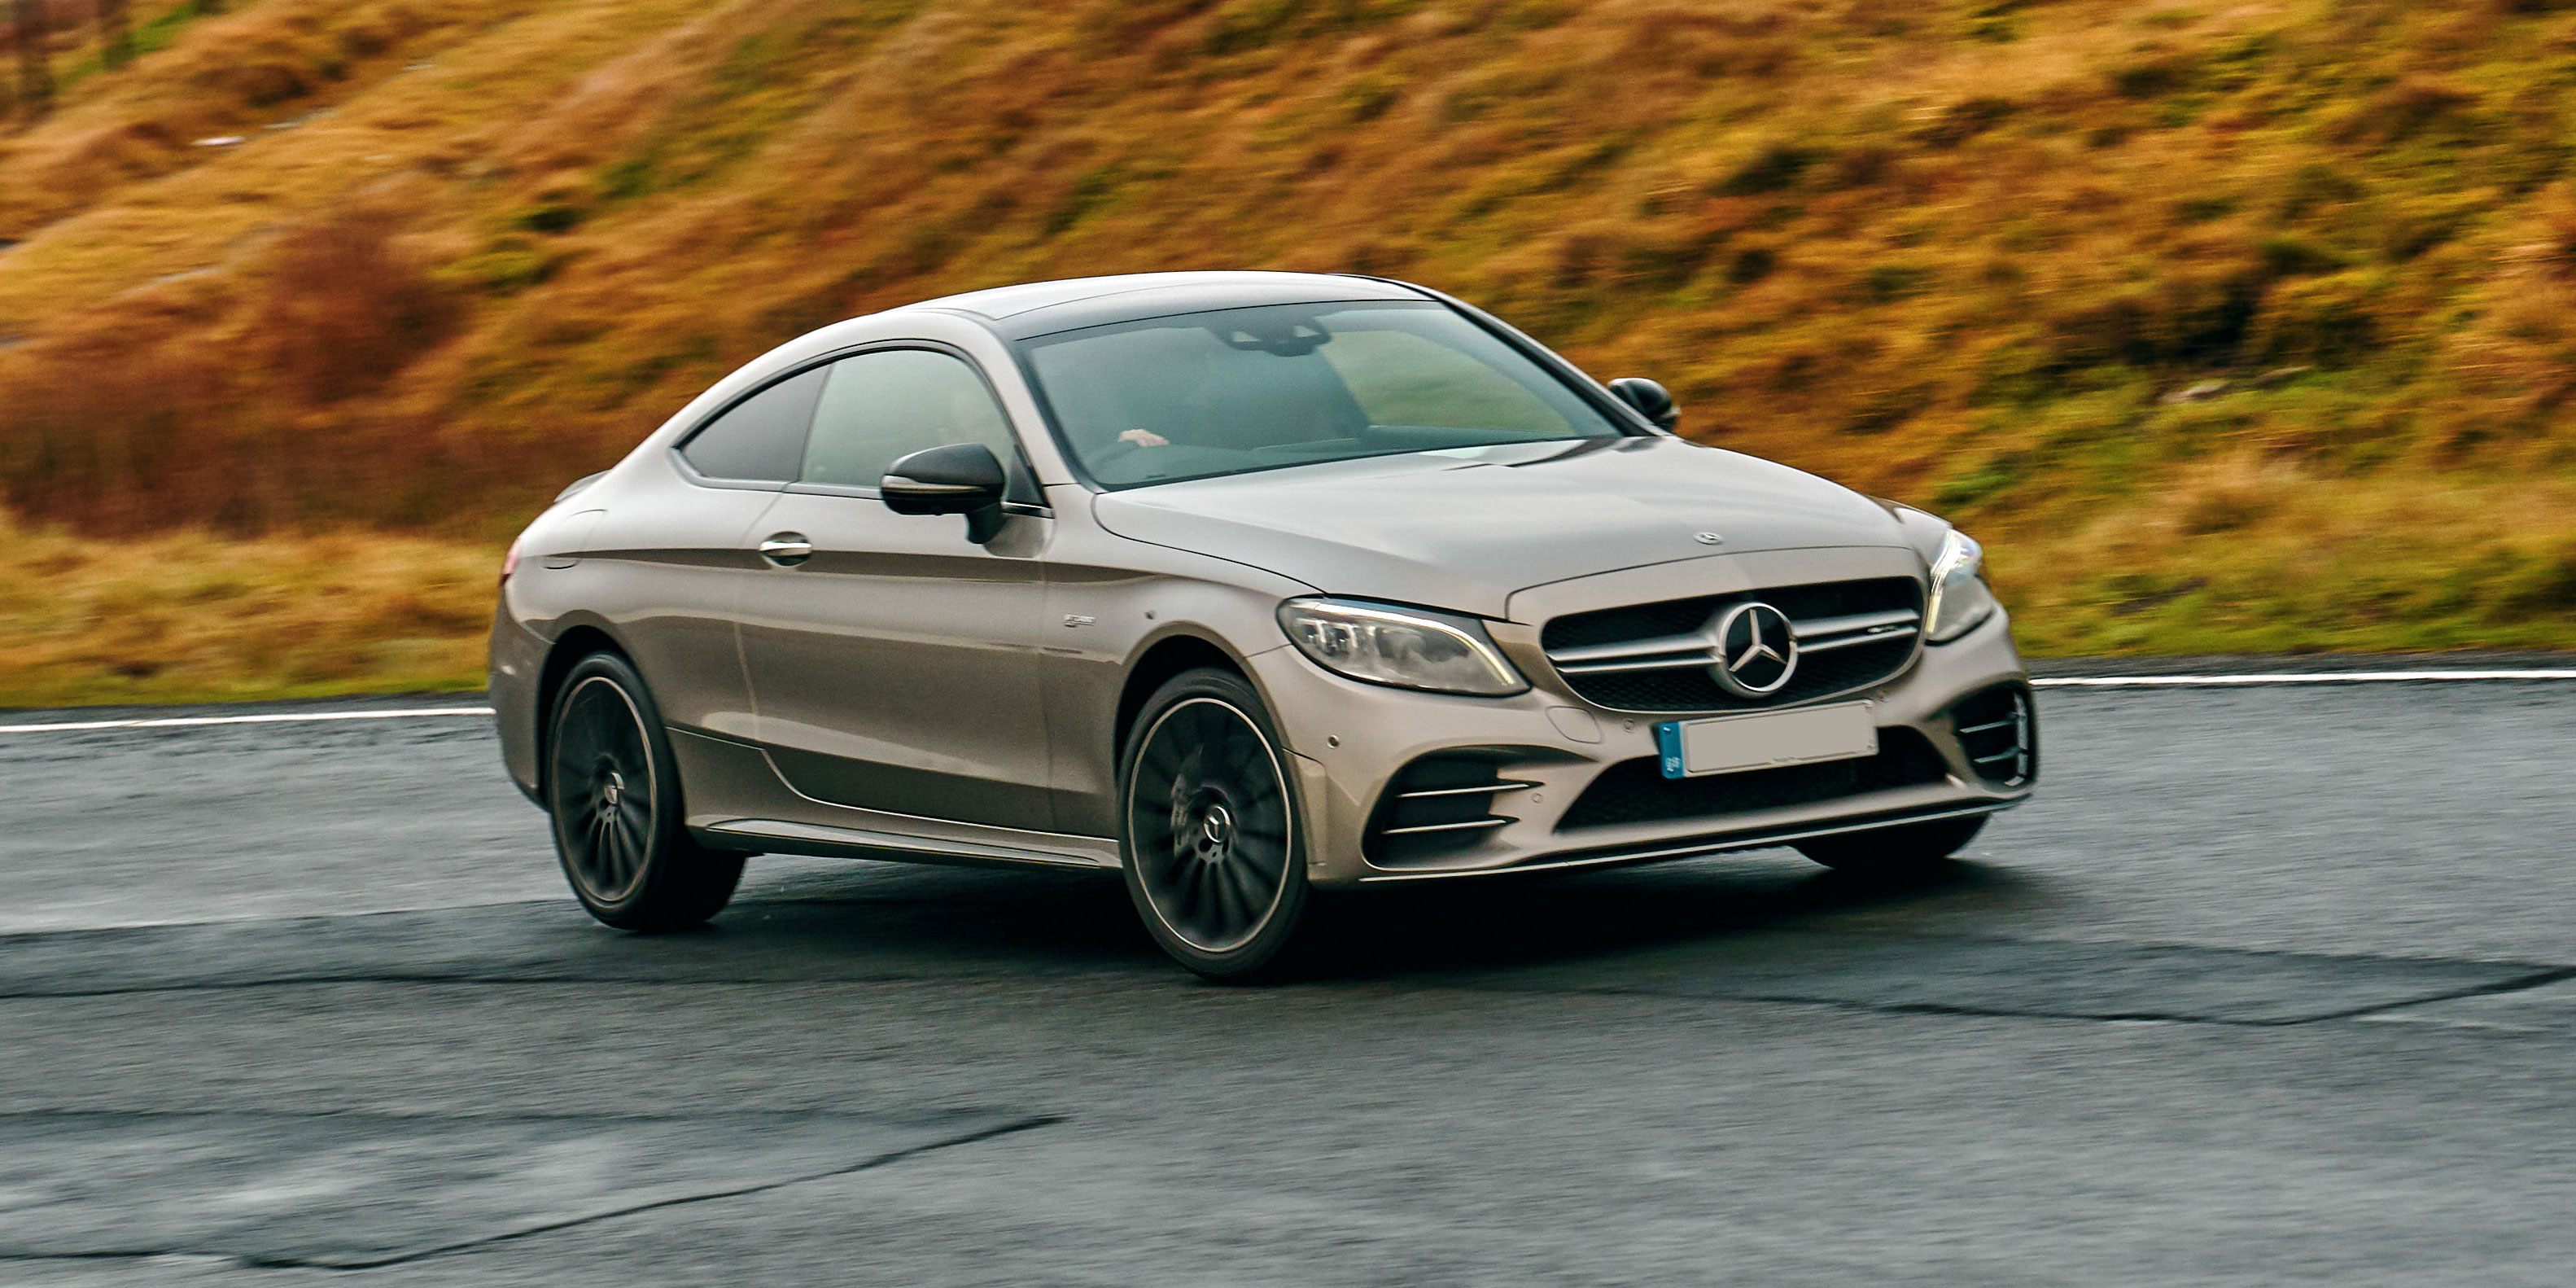 New Mercedes Amg C43 Coupe Review Carwow